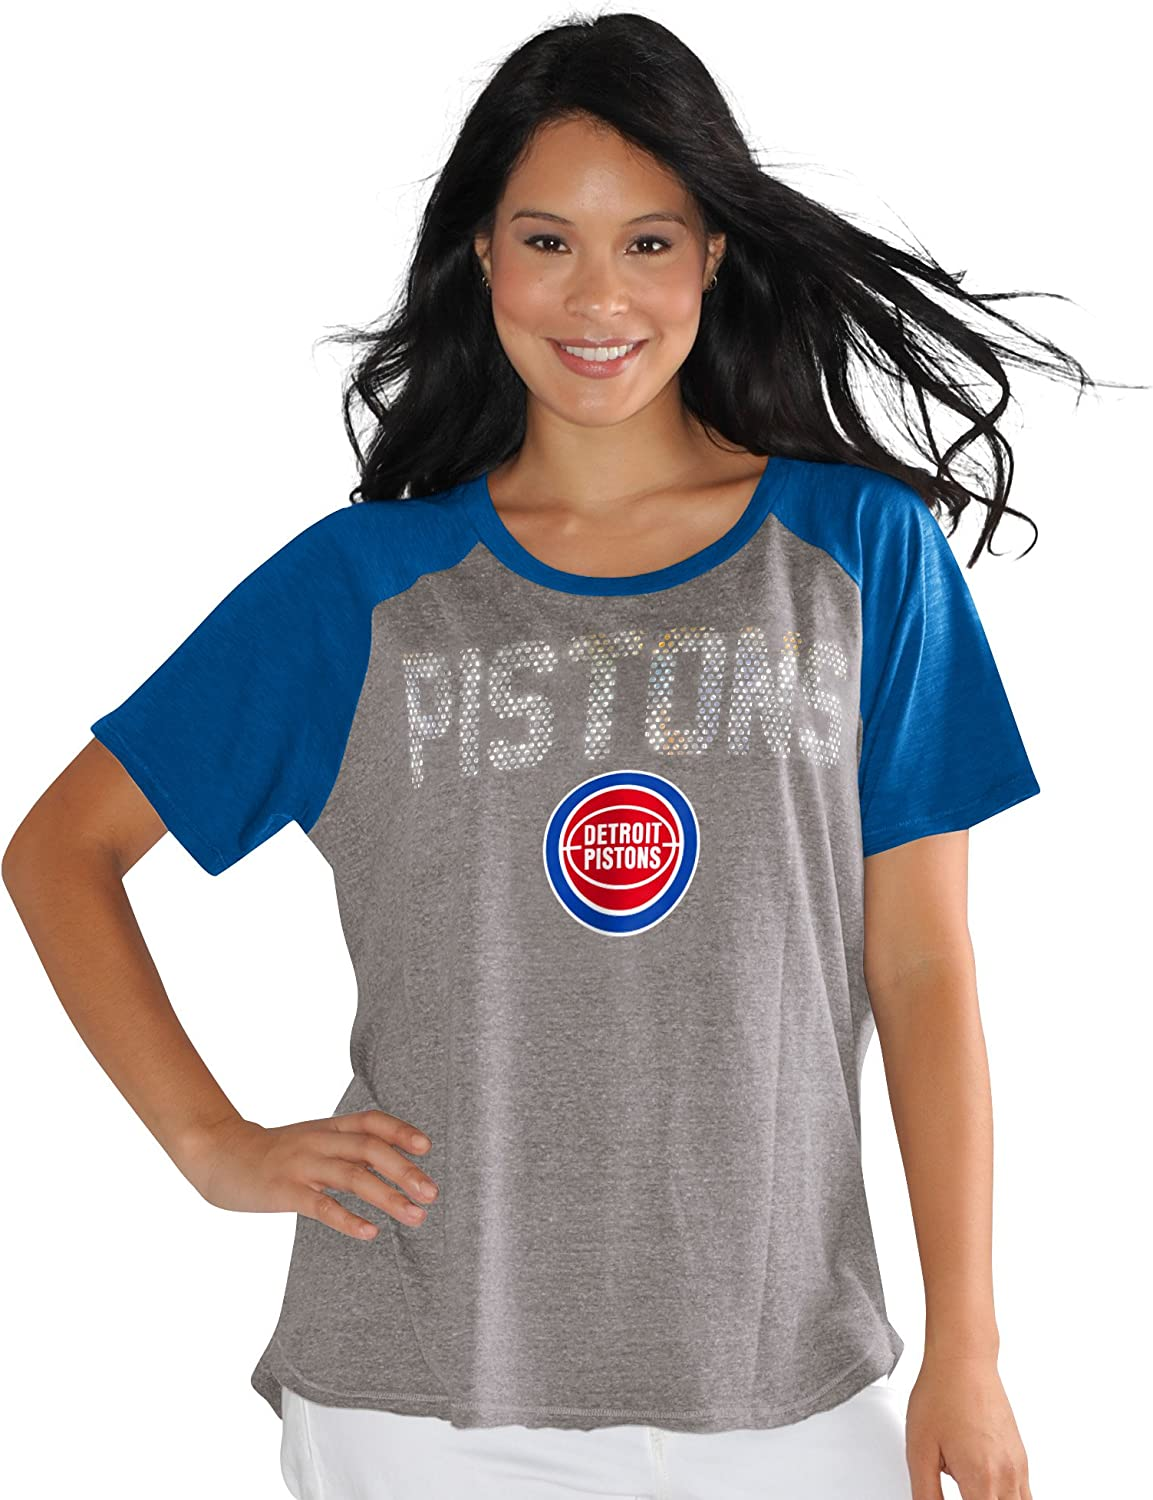 Touch by Alyssa Milano NBA Detroit Pistons Conference Tee Plus 1X Heather Grey